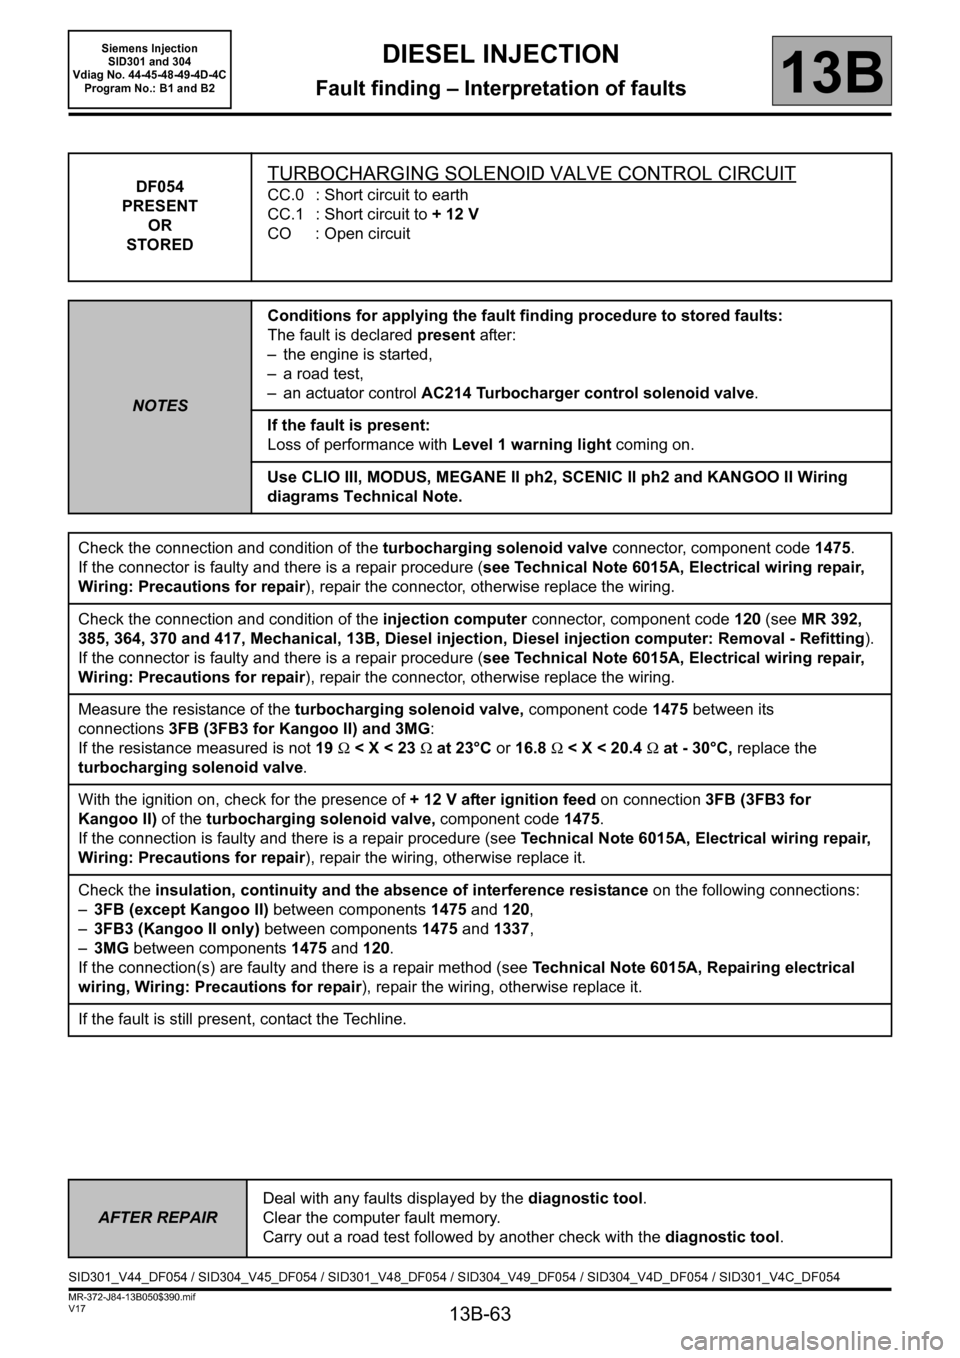 RENAULT SCENIC 2011 J95 / 3.G Engine And Peripherals Siemens Injection Workshop Manual, Page 63